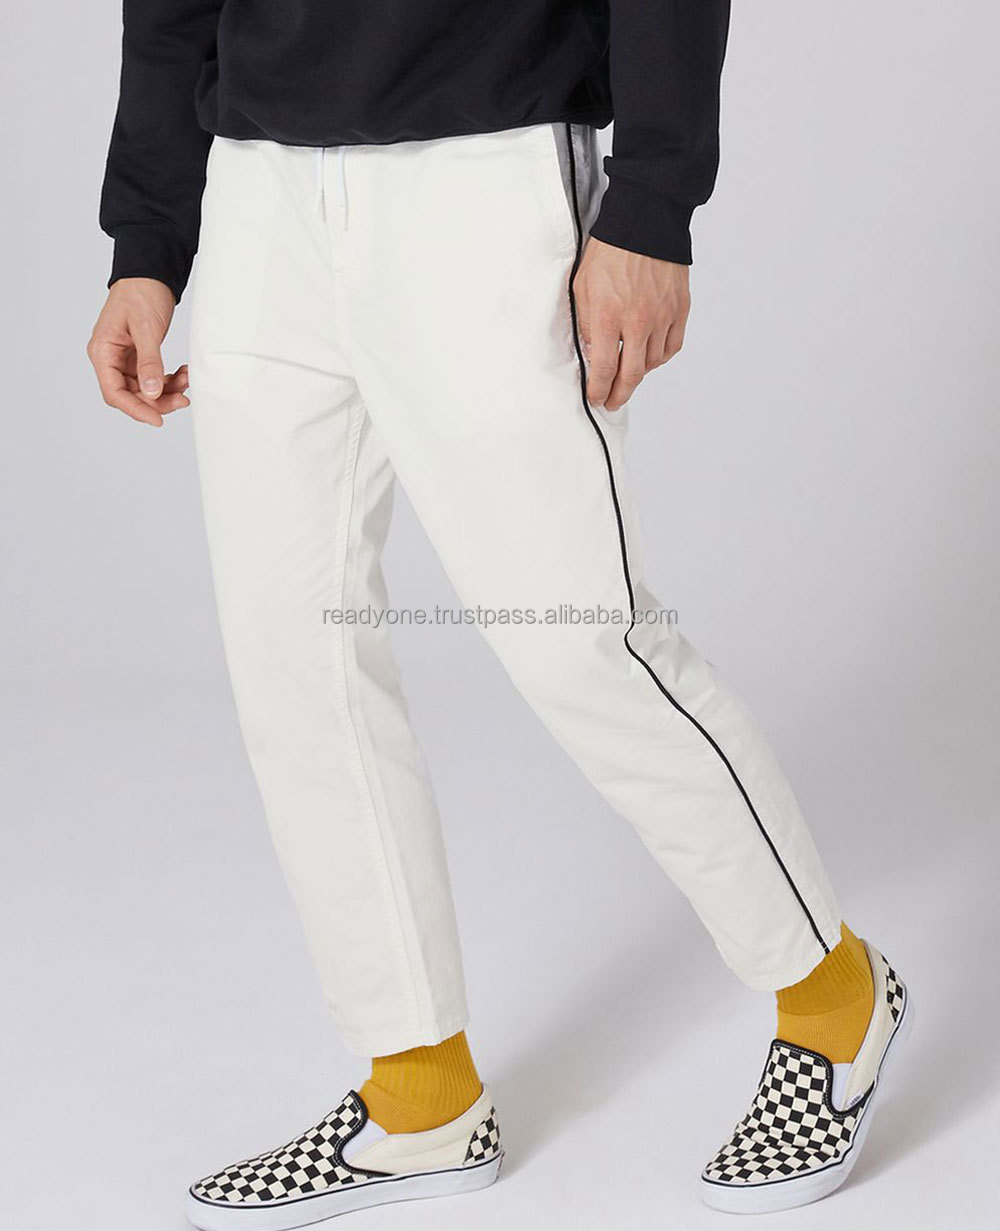 wholesale blank jogger pants men sports pants Manufacture by Hawk Eye Co